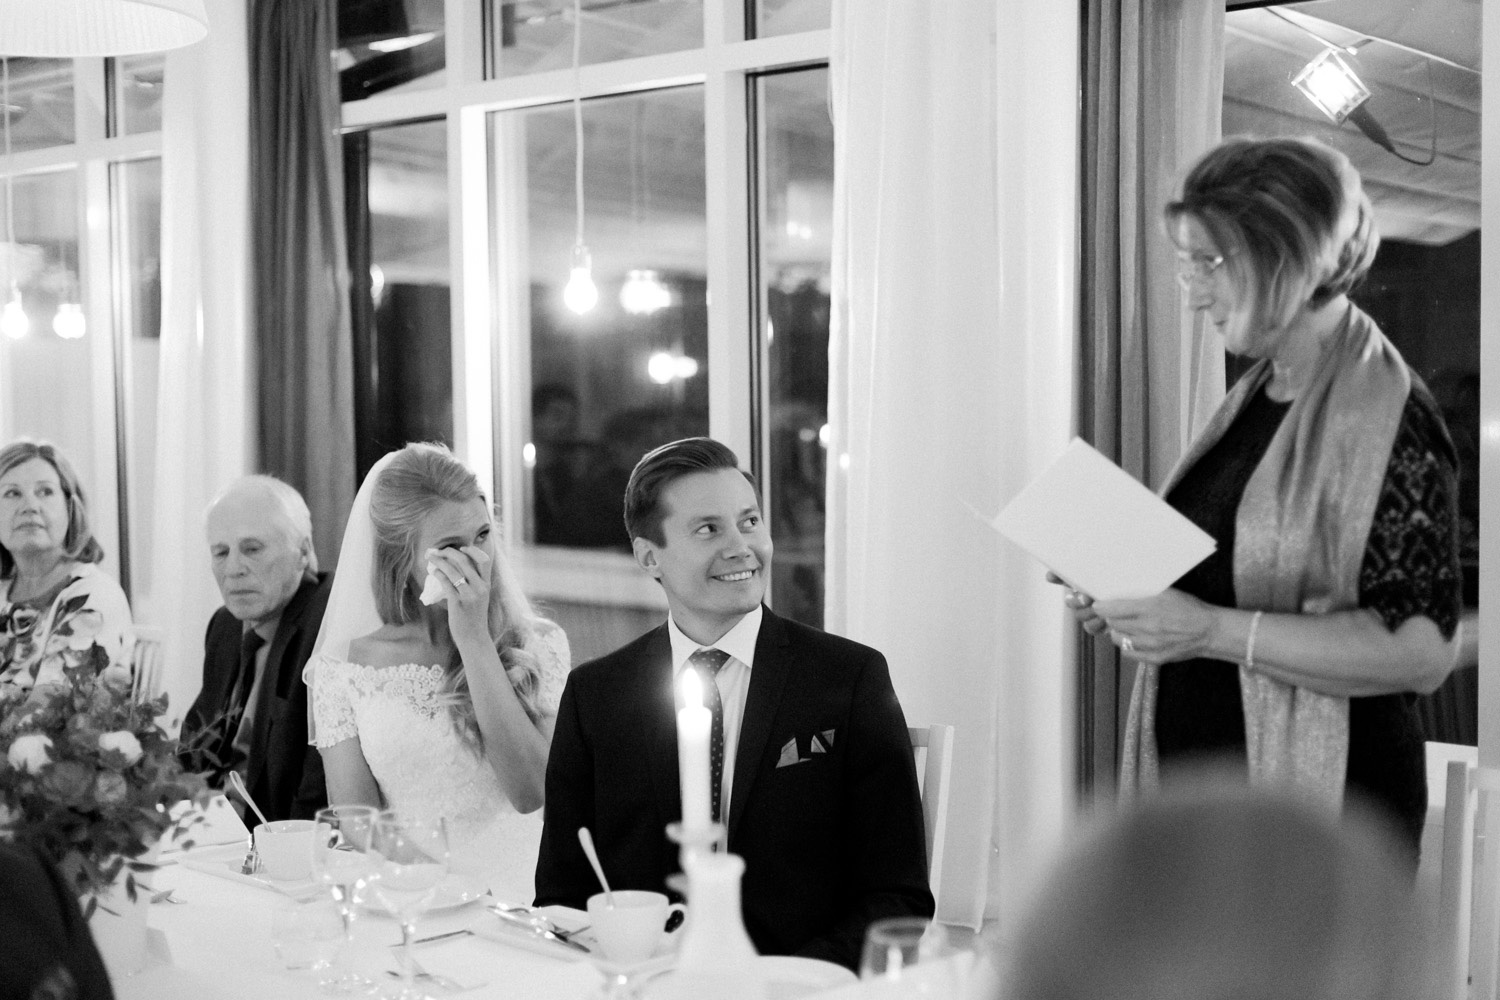 076-sweden-vidbynäs-wedding-photographer-bröllopsfotograf.jpg